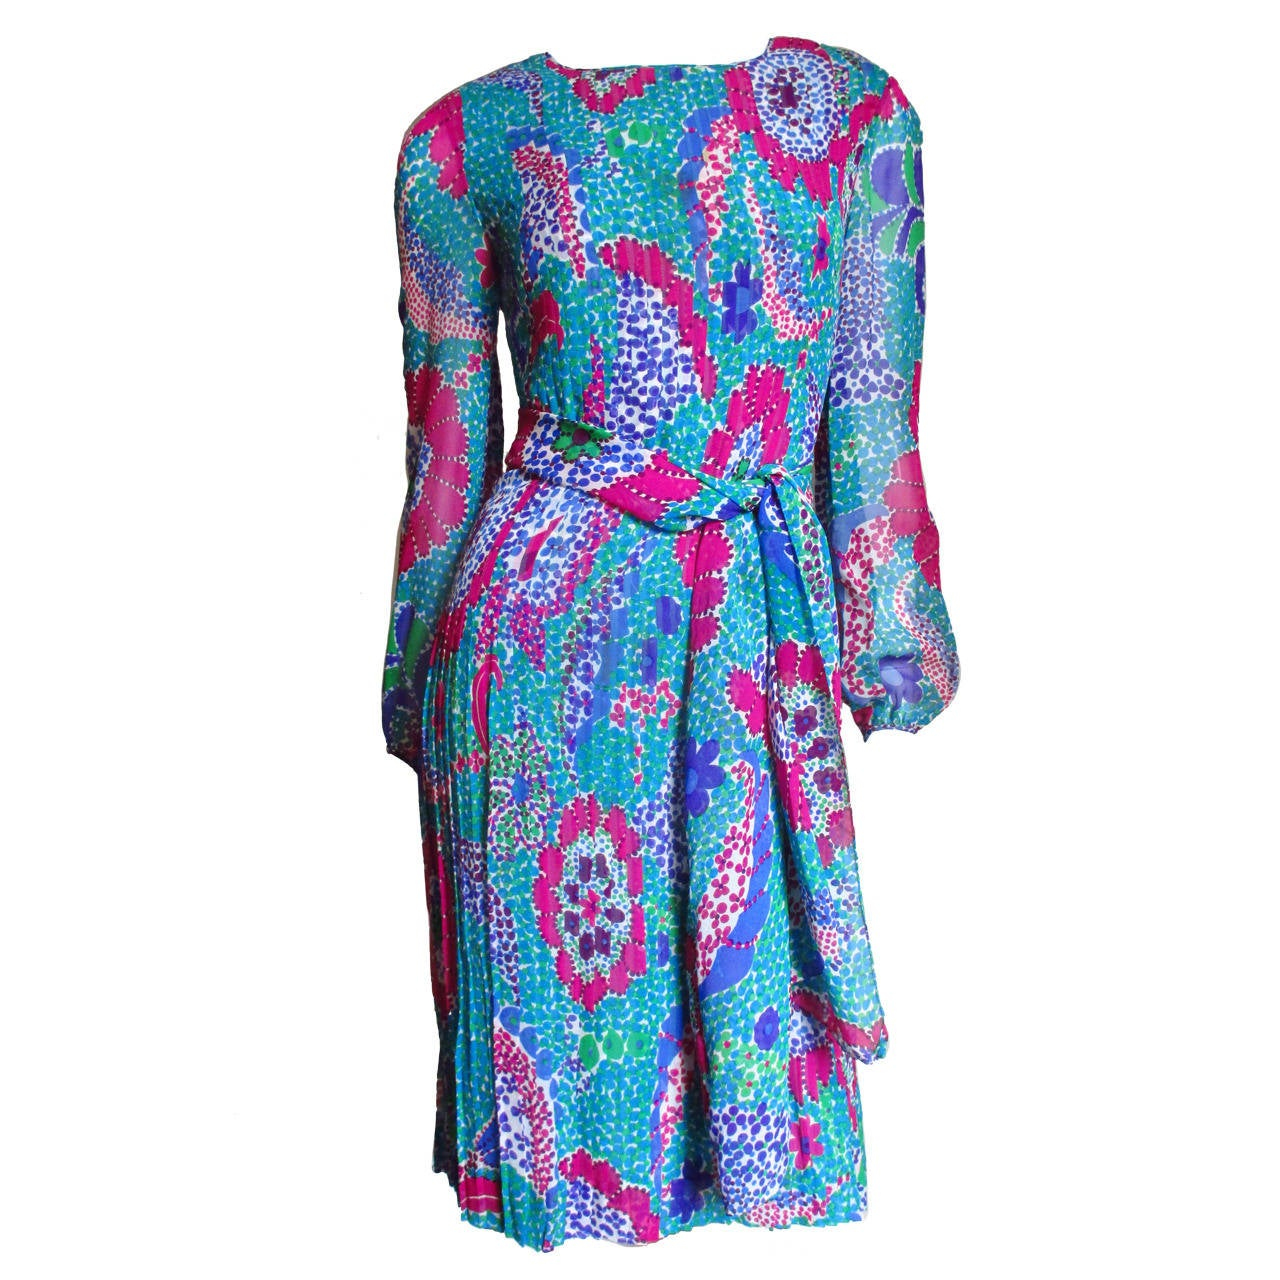 1960s Pierre Cardin Mod Silk Dress